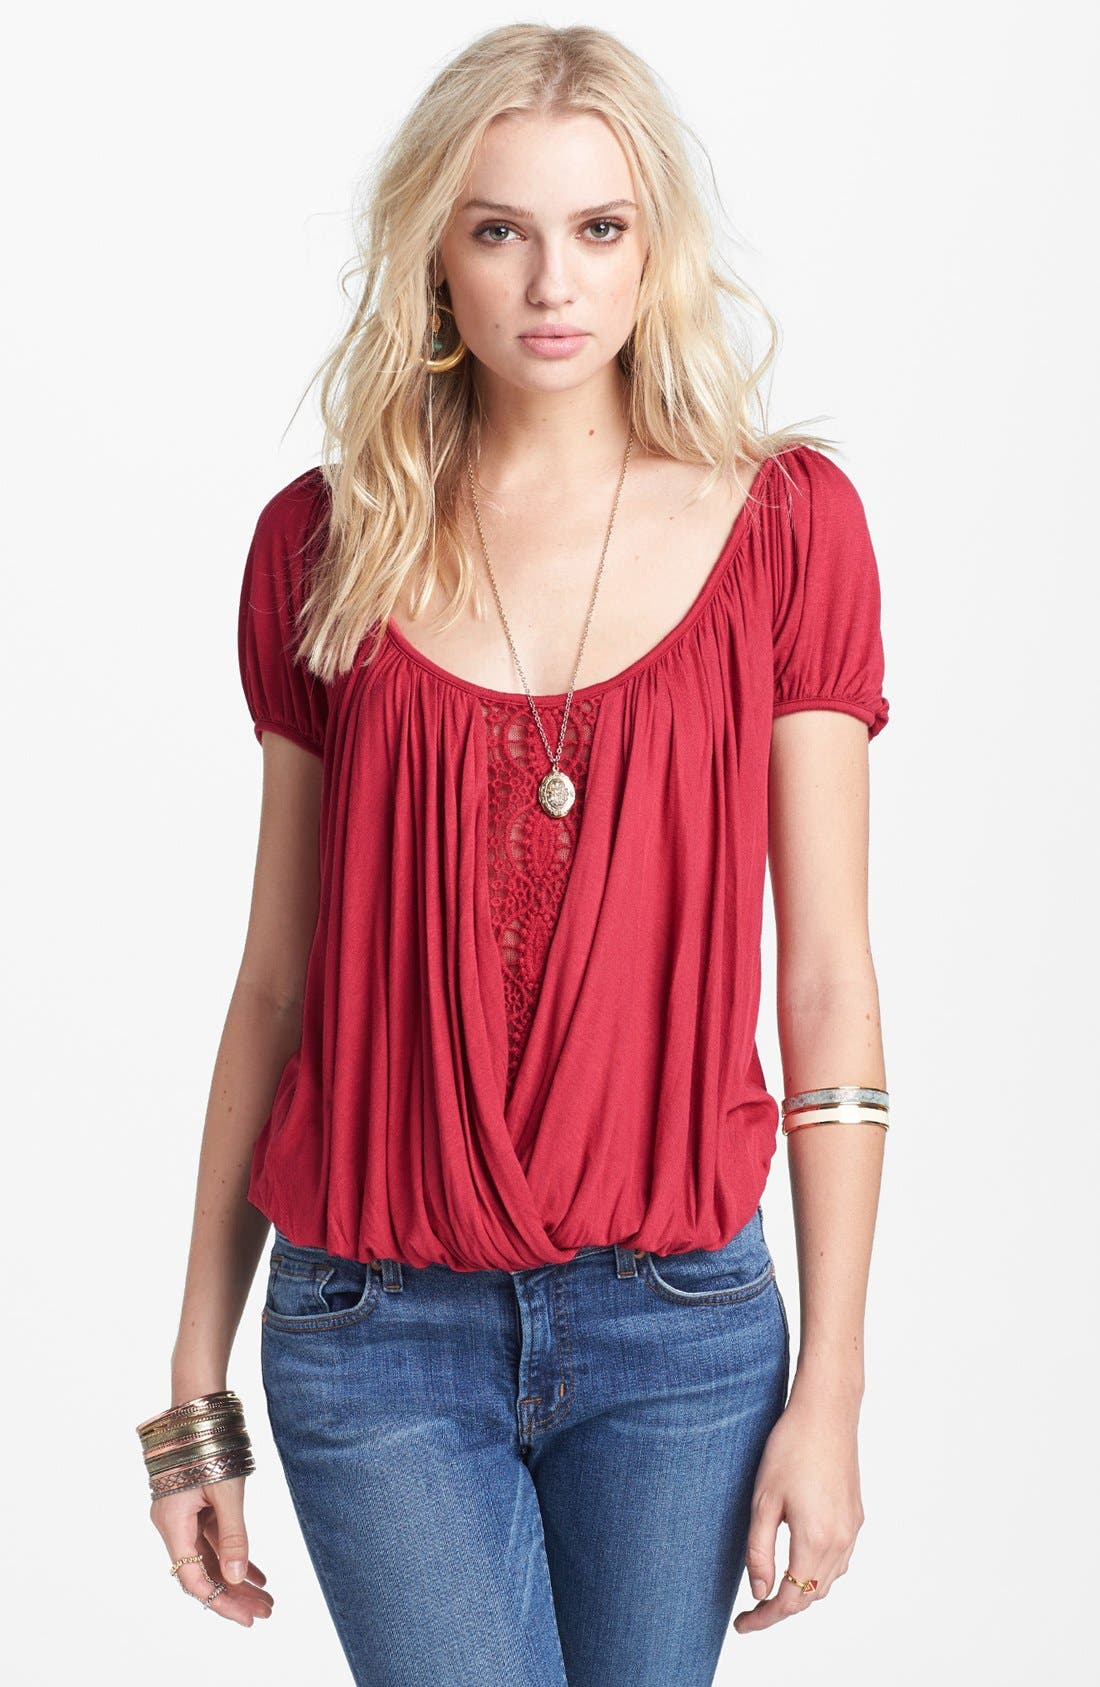 Alternate Image 1 Selected - Free People 'Anns' Crochet Trim Gathered Top